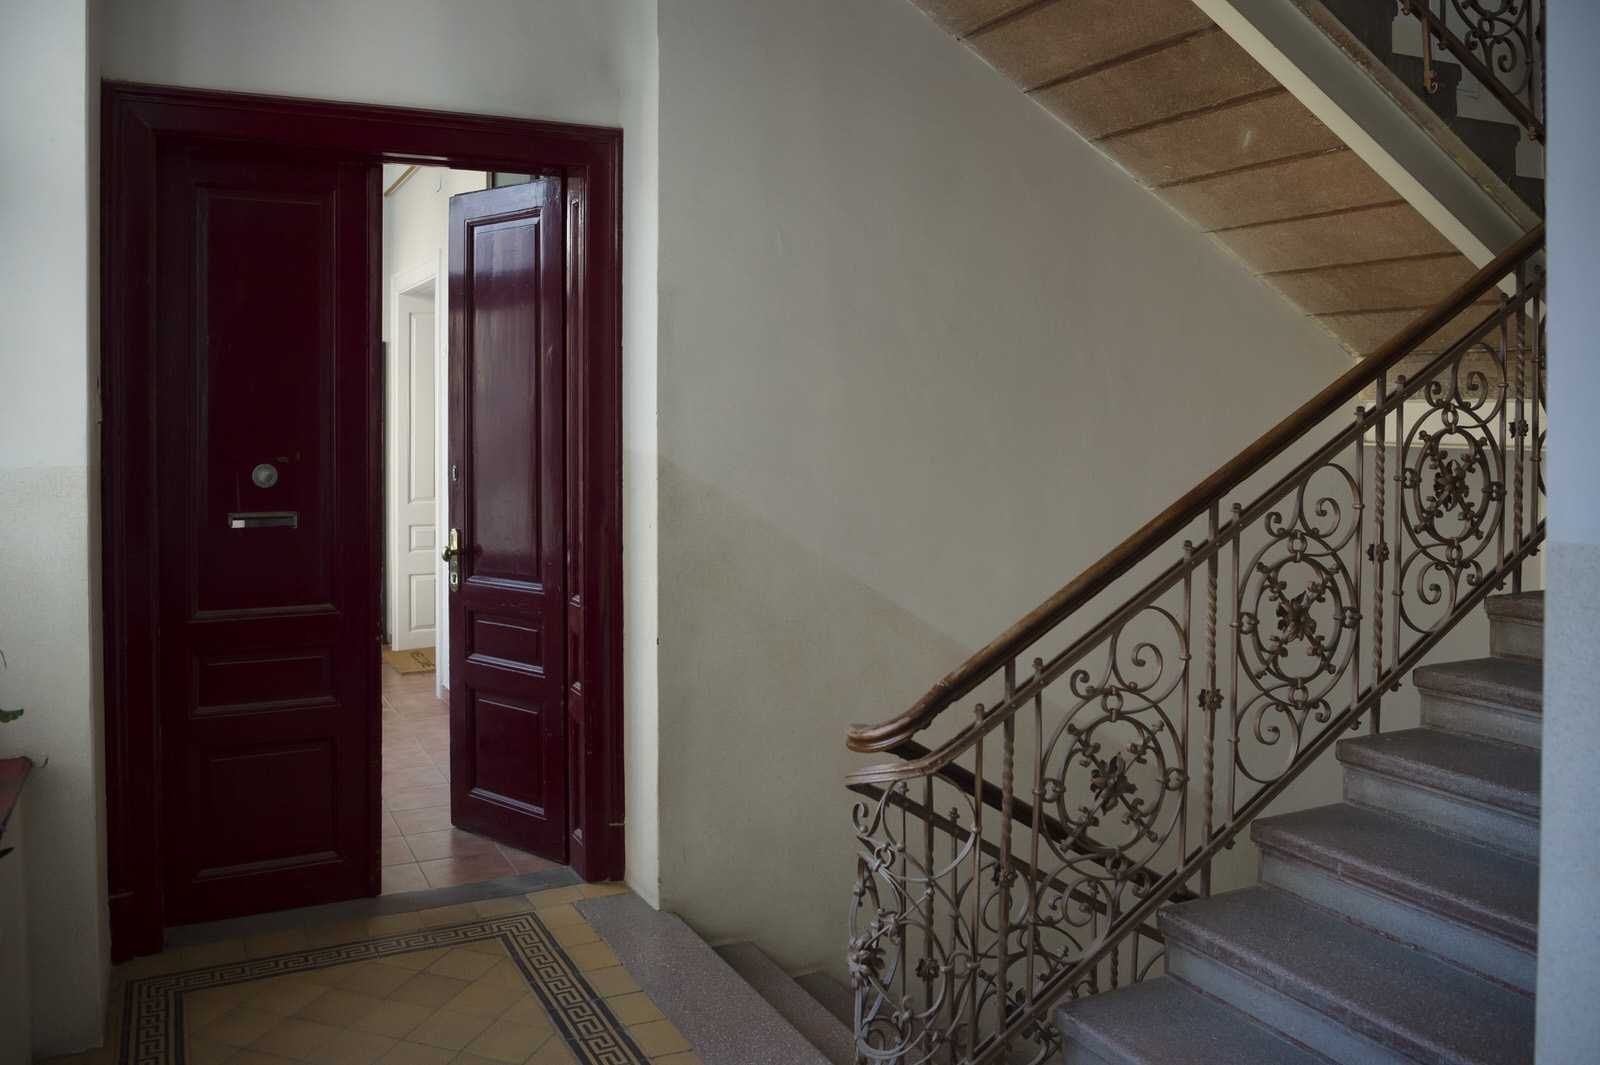 Ljubljana rental apartment features double-wide, dark red doors